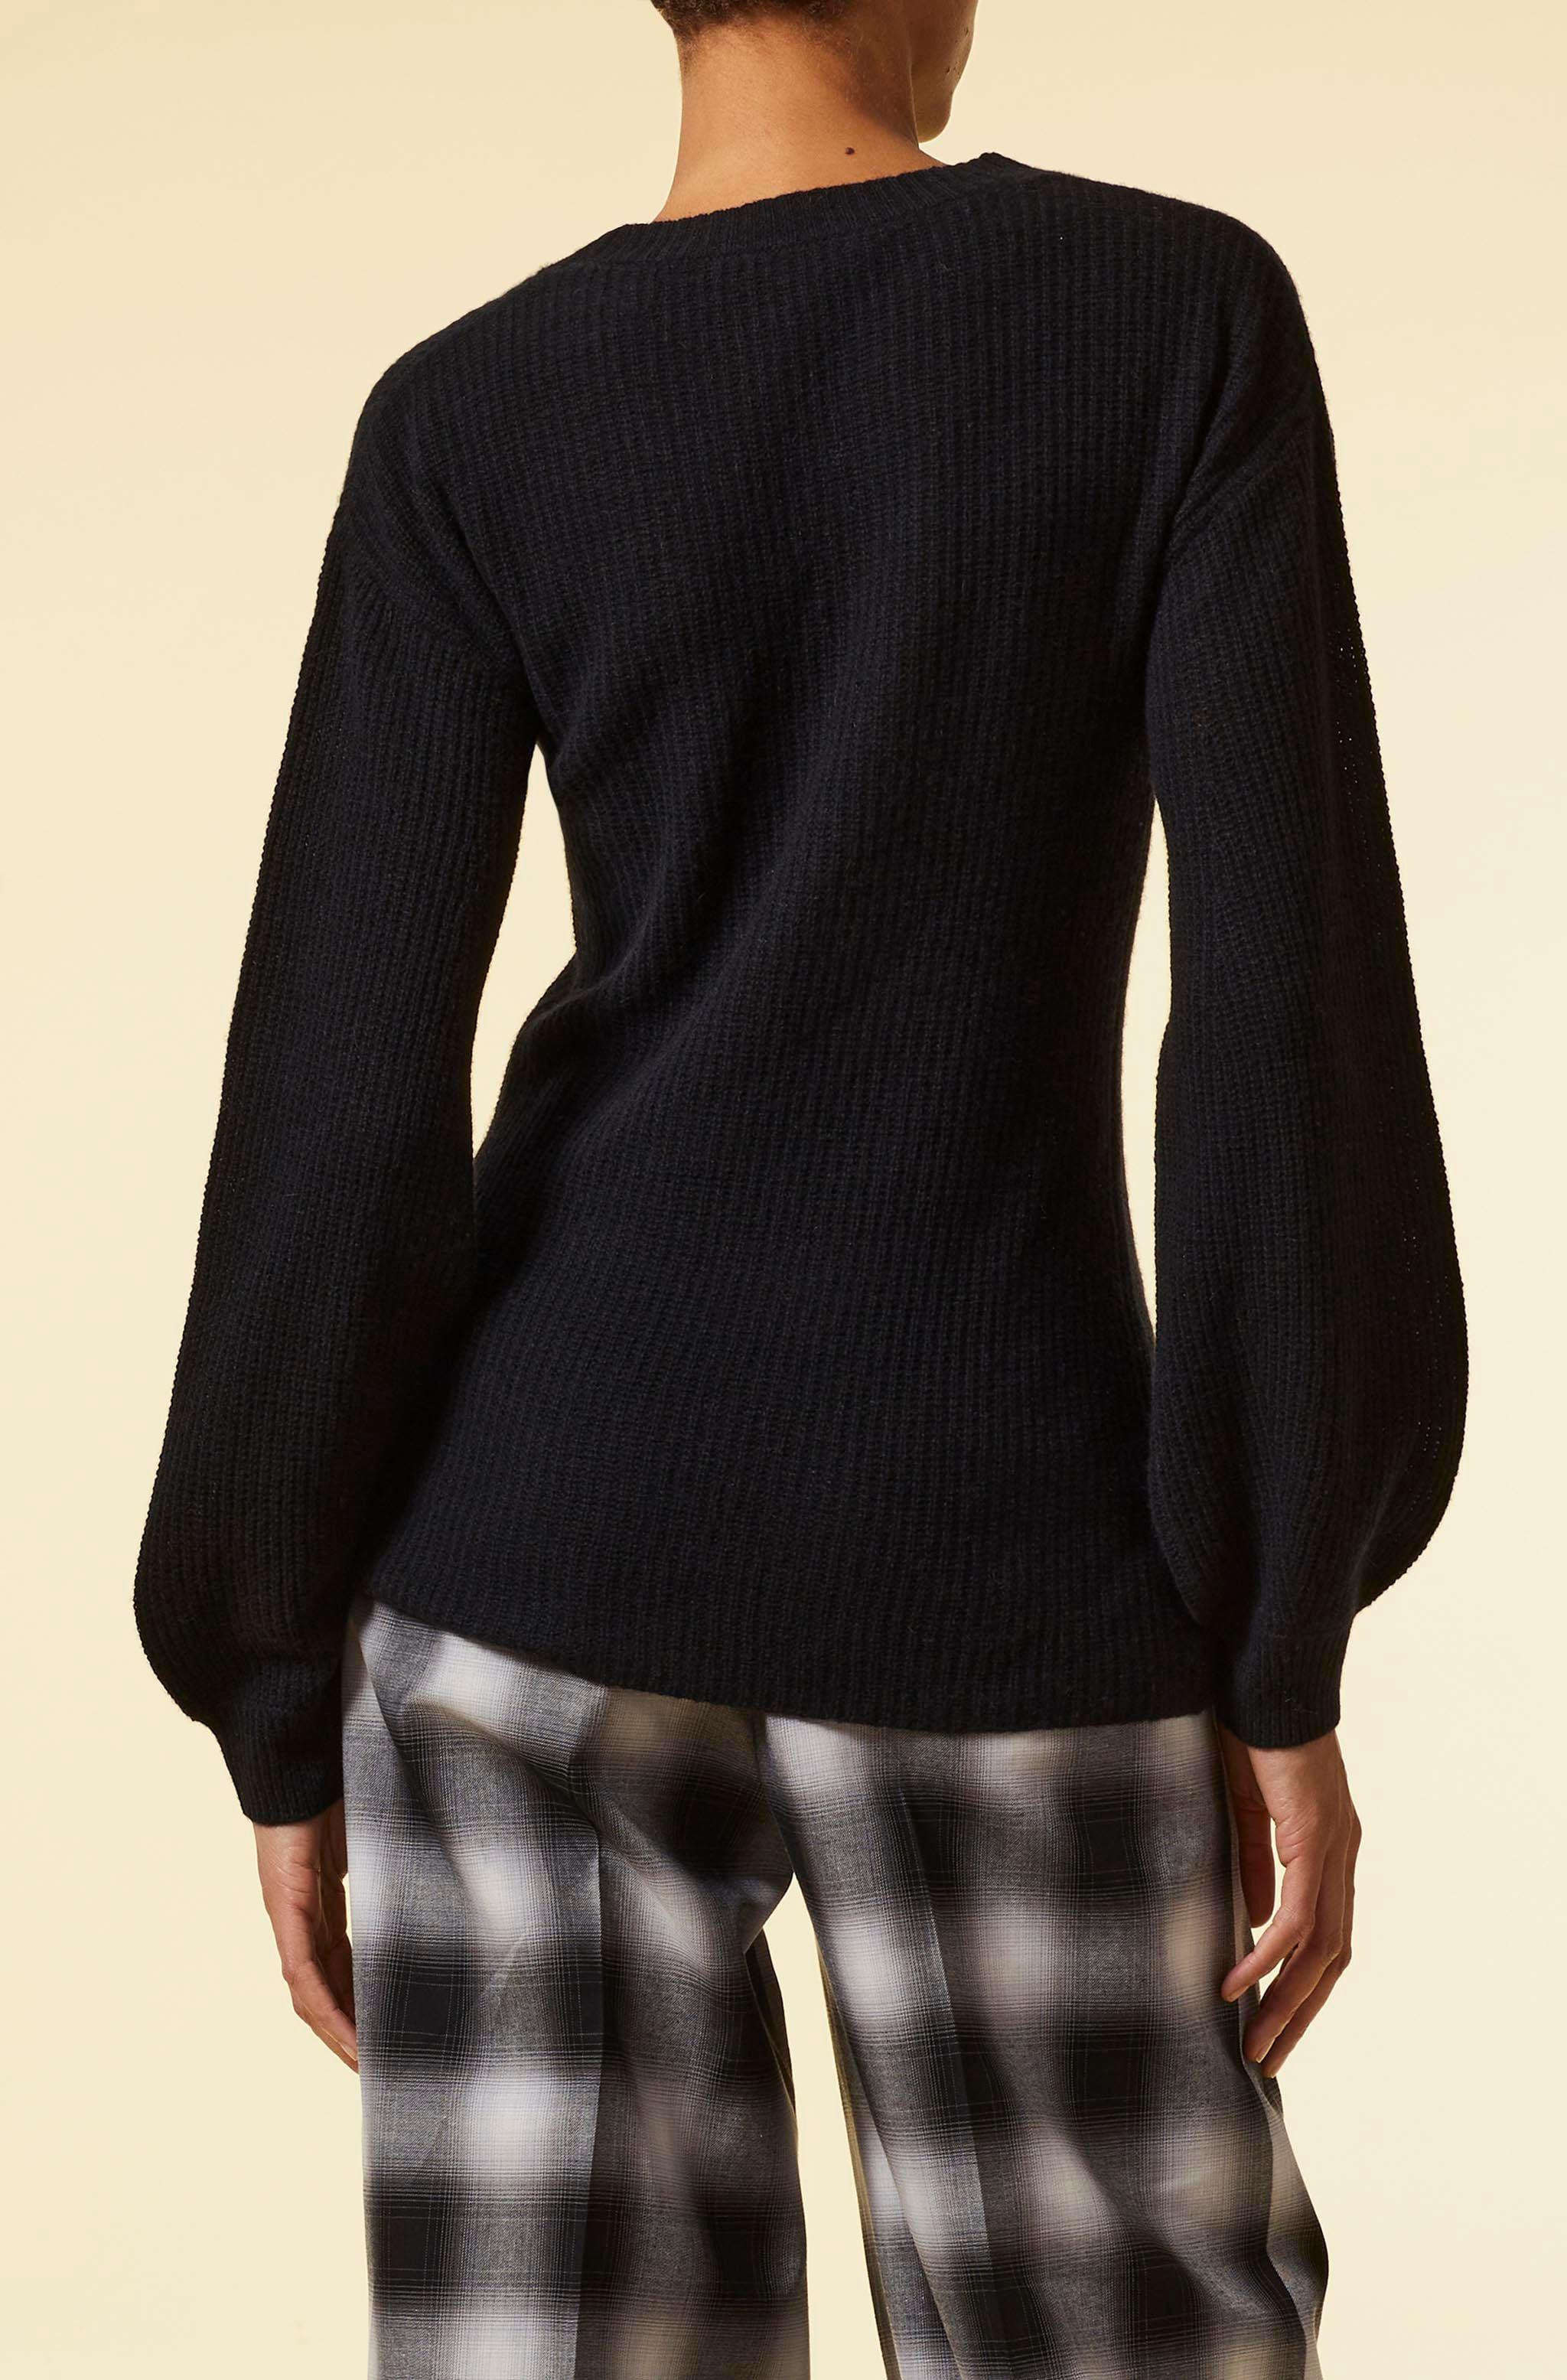 'Brenner' Knit Sweater 1